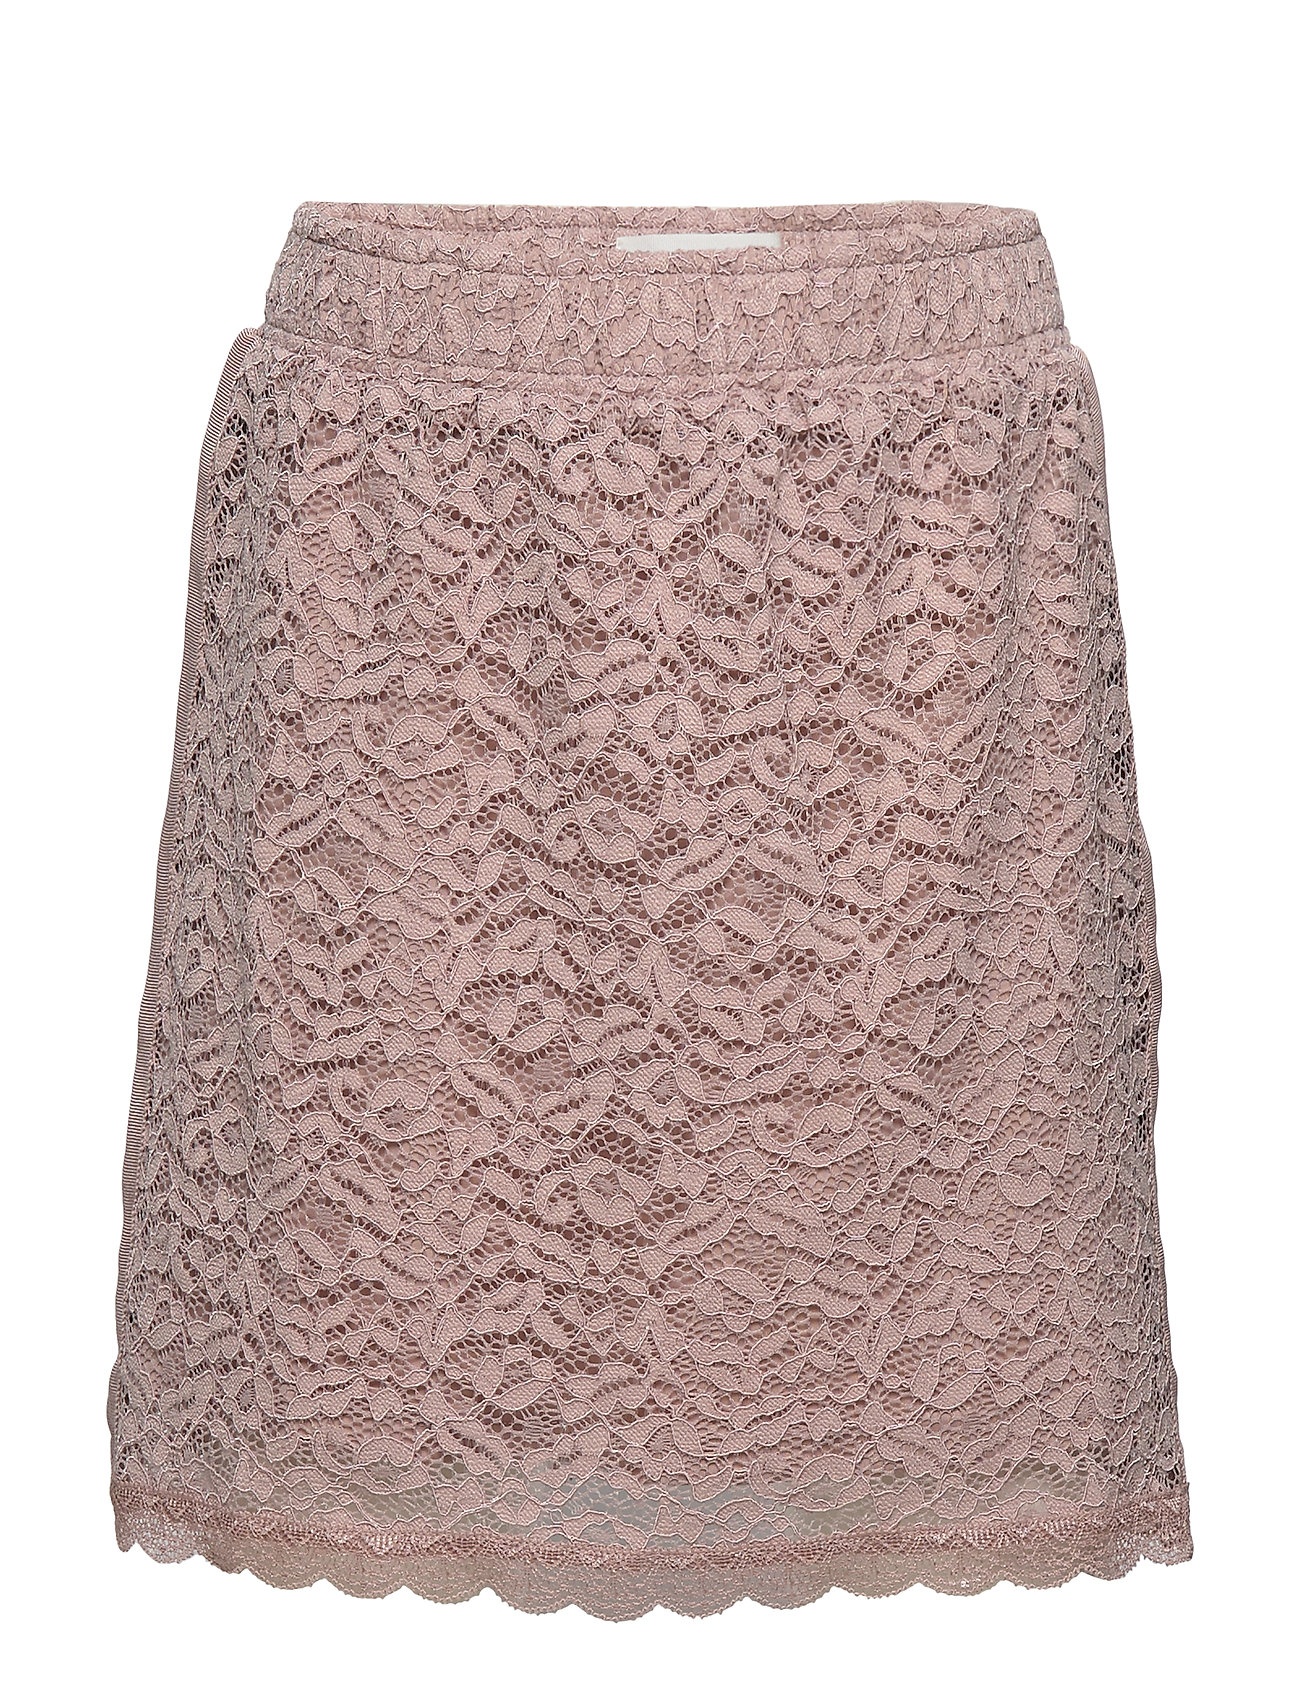 Rosemunde Kids Skirt - VINTAGE POWDER